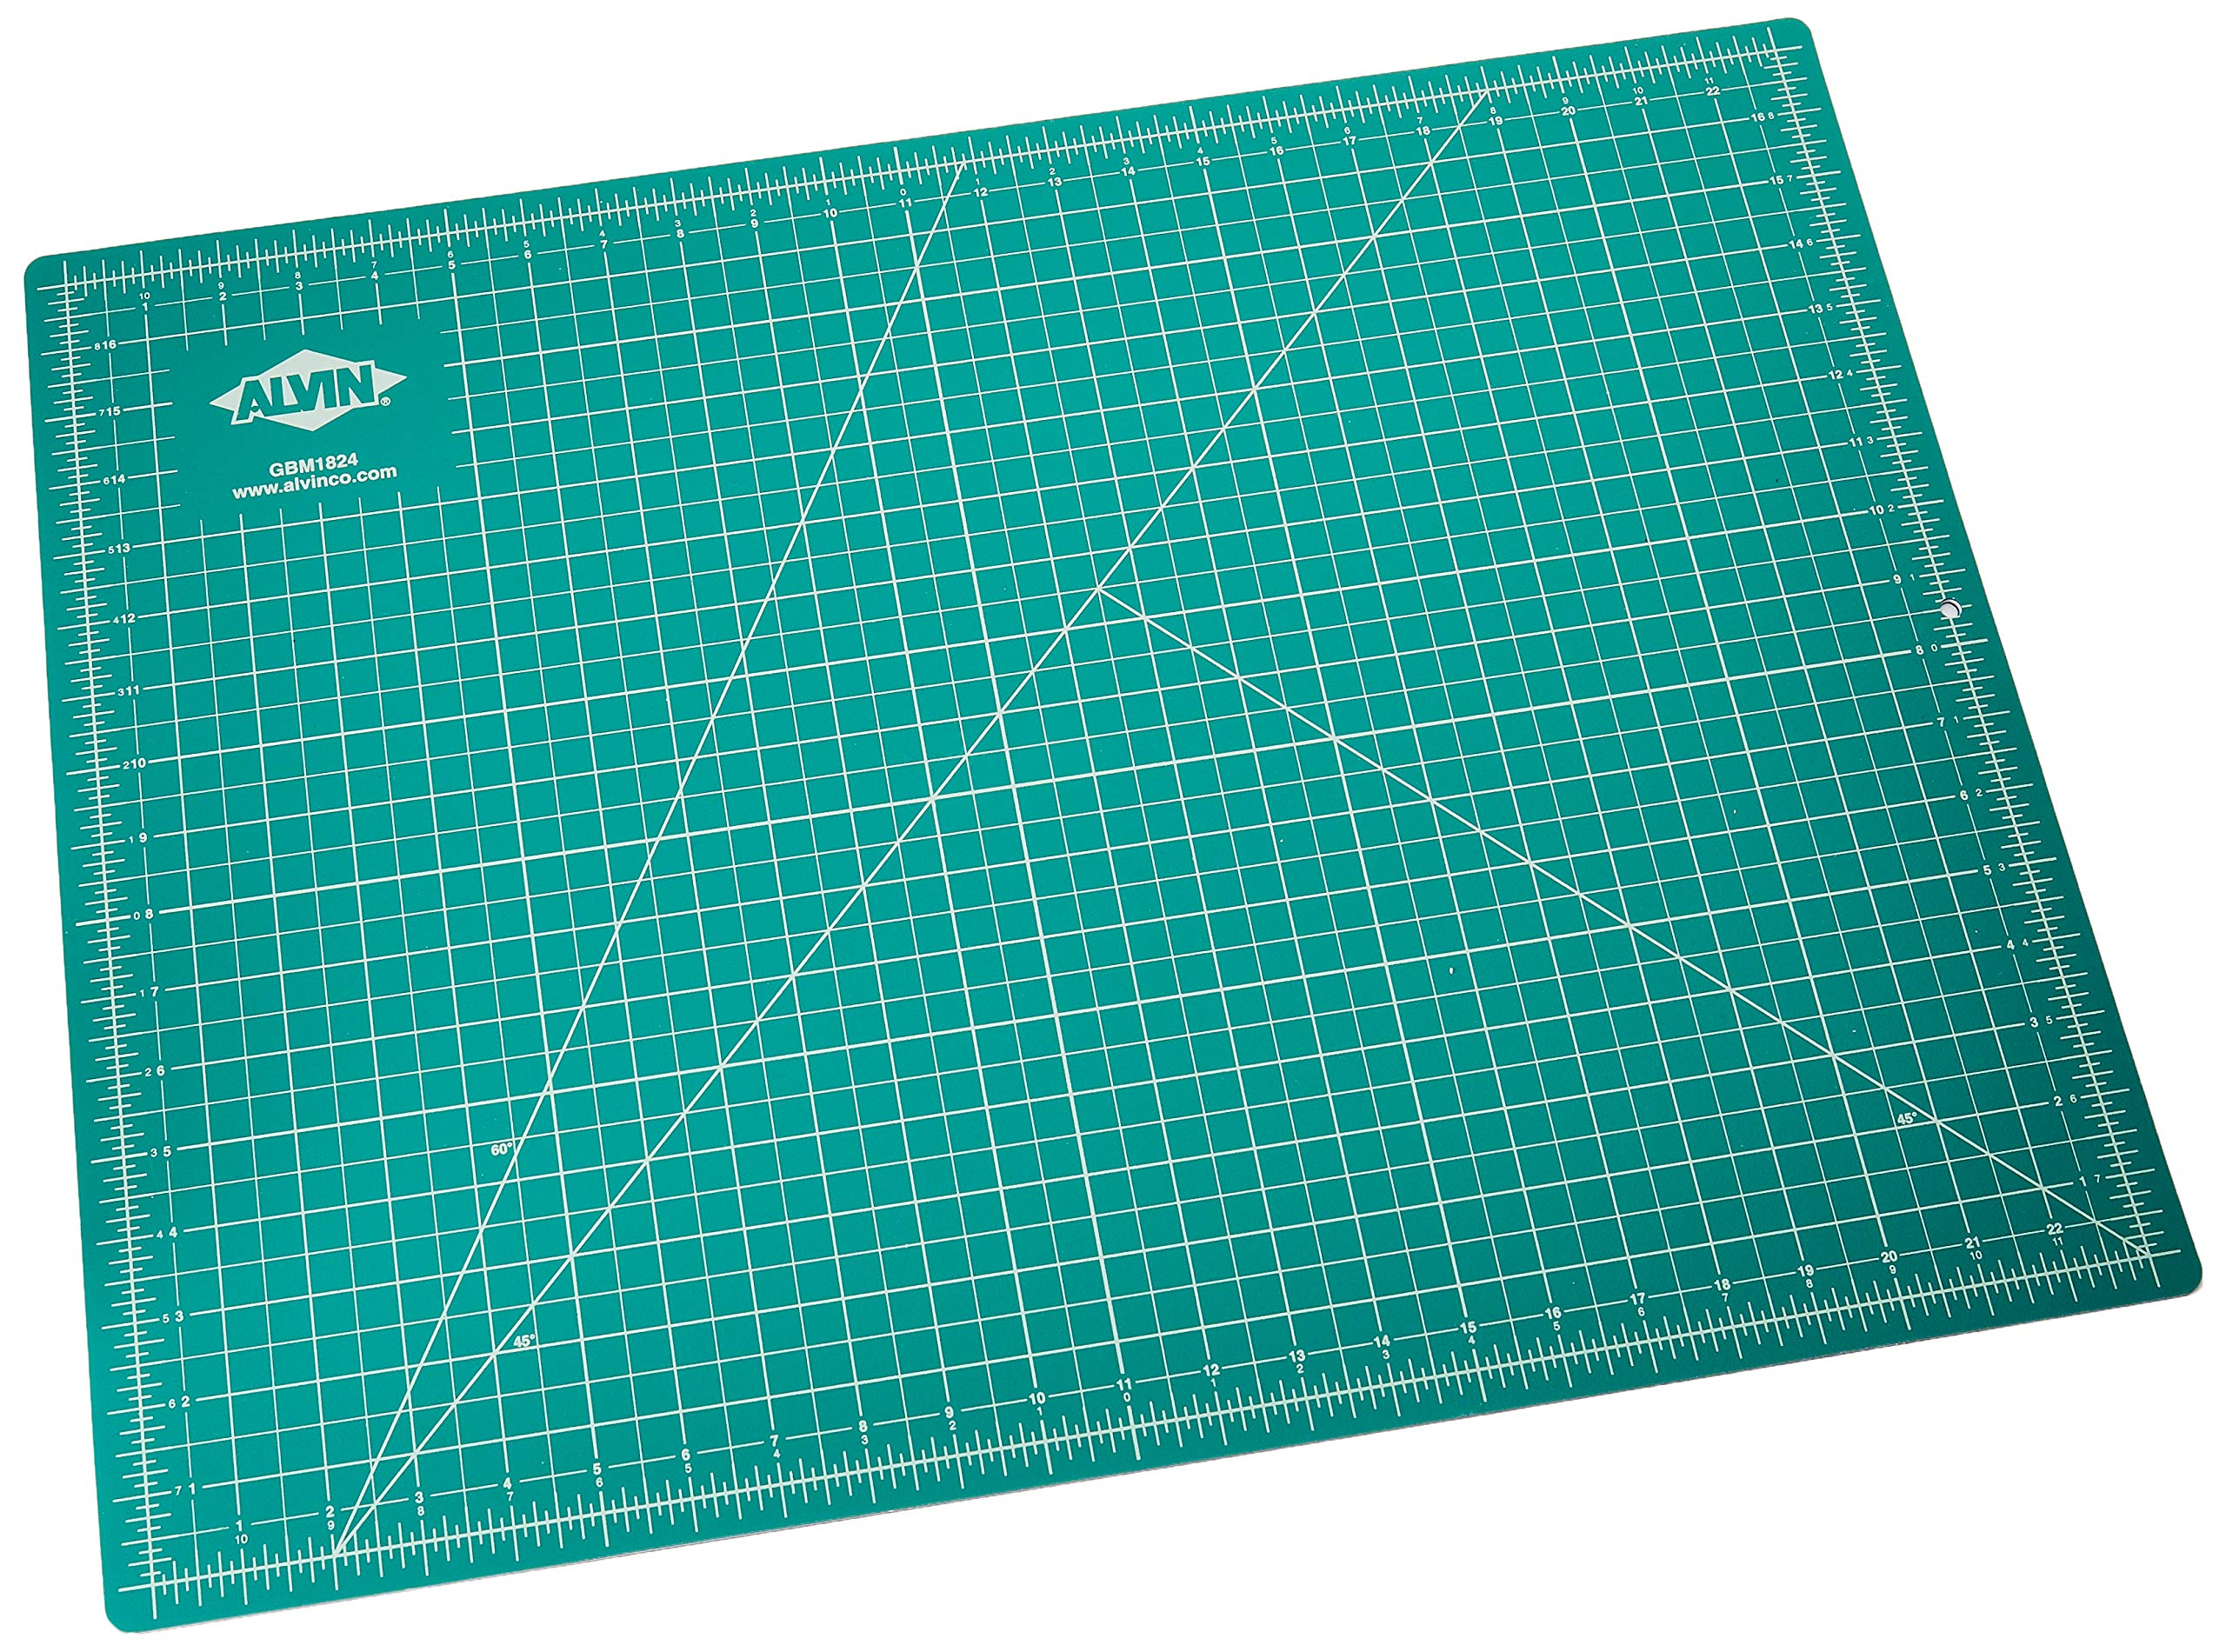 Alvin GBM1824 GBM Series 18 inches x 24 inches Green/Black Professional Self-Healing Cutting Mat by Alvin